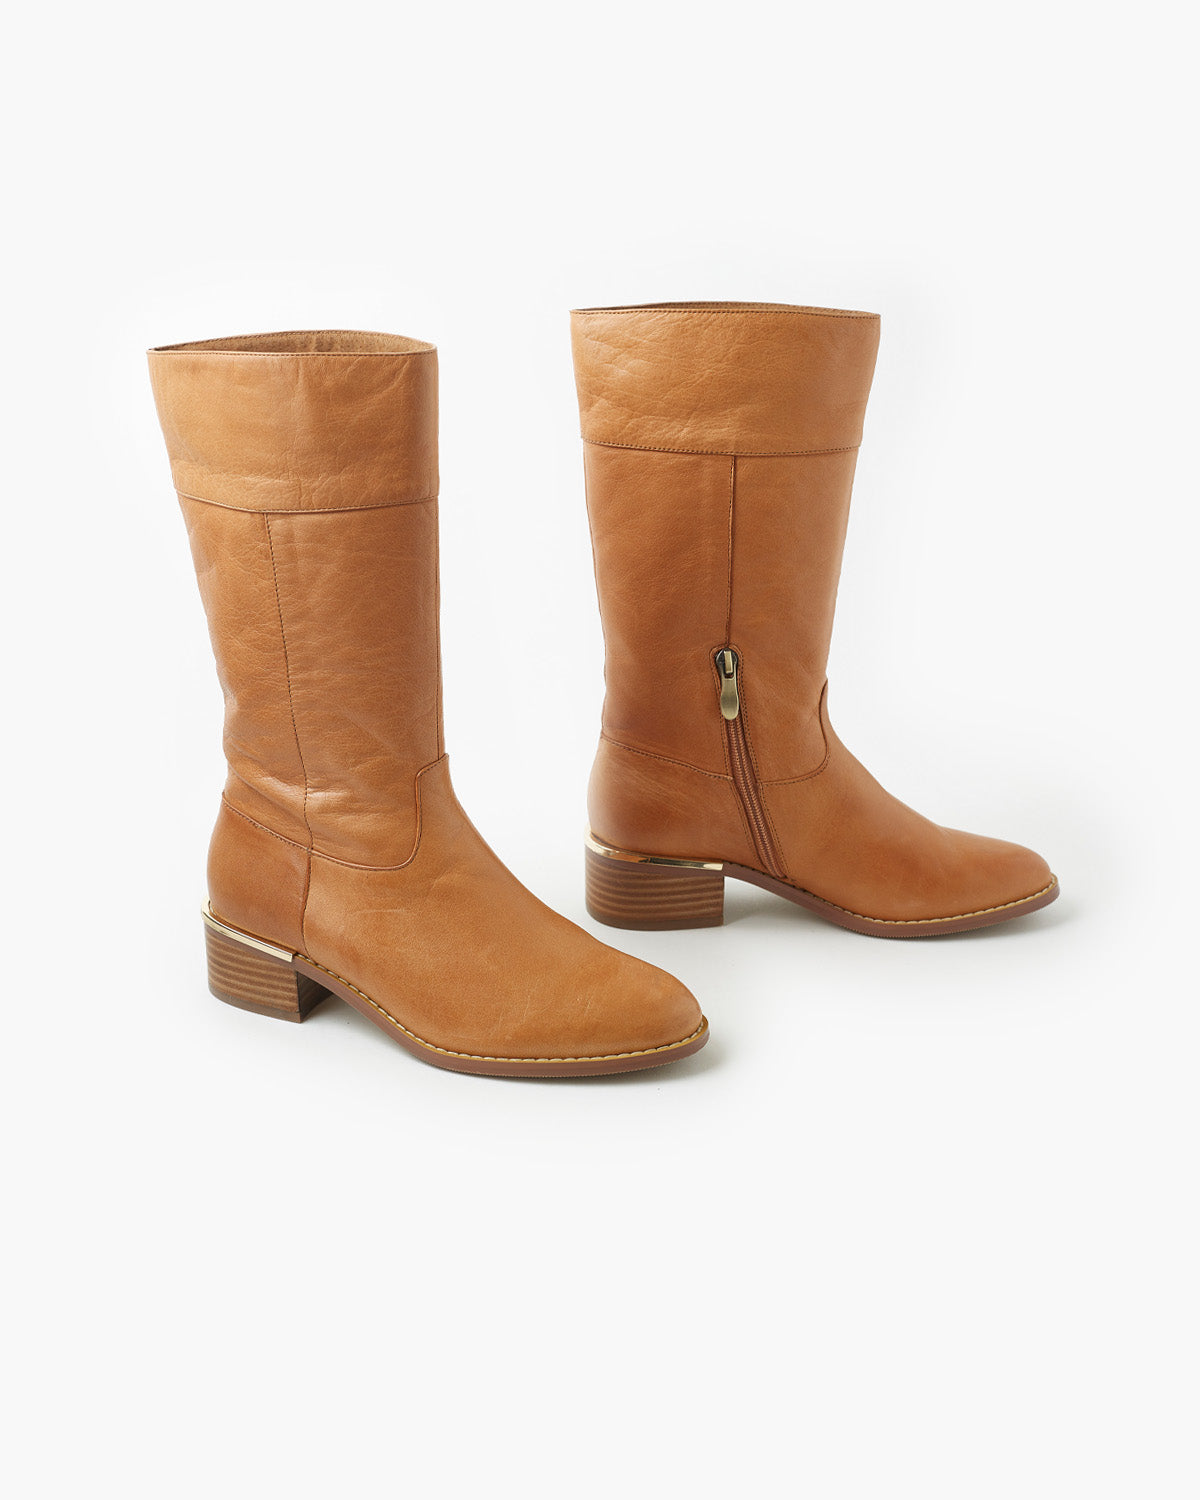 Woodland Leather Boot - Tan